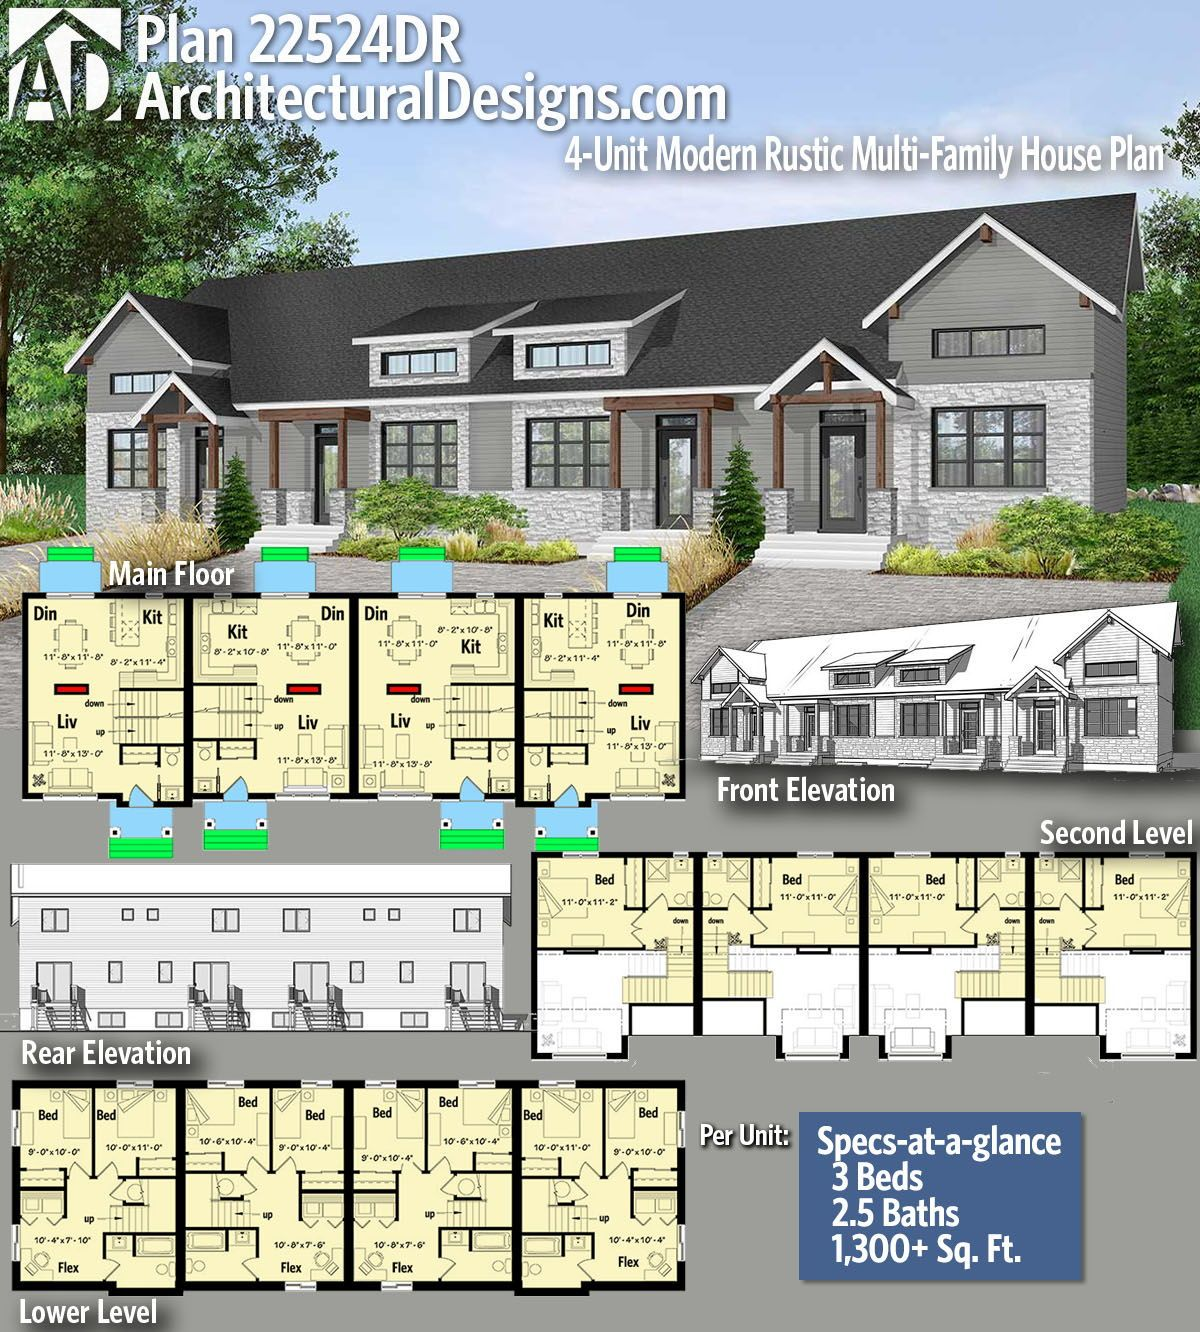 Plan 22524dr 4 Unit Modern Rustic Multi Family House Plan Family House Plans House Plans Rustic House Plans